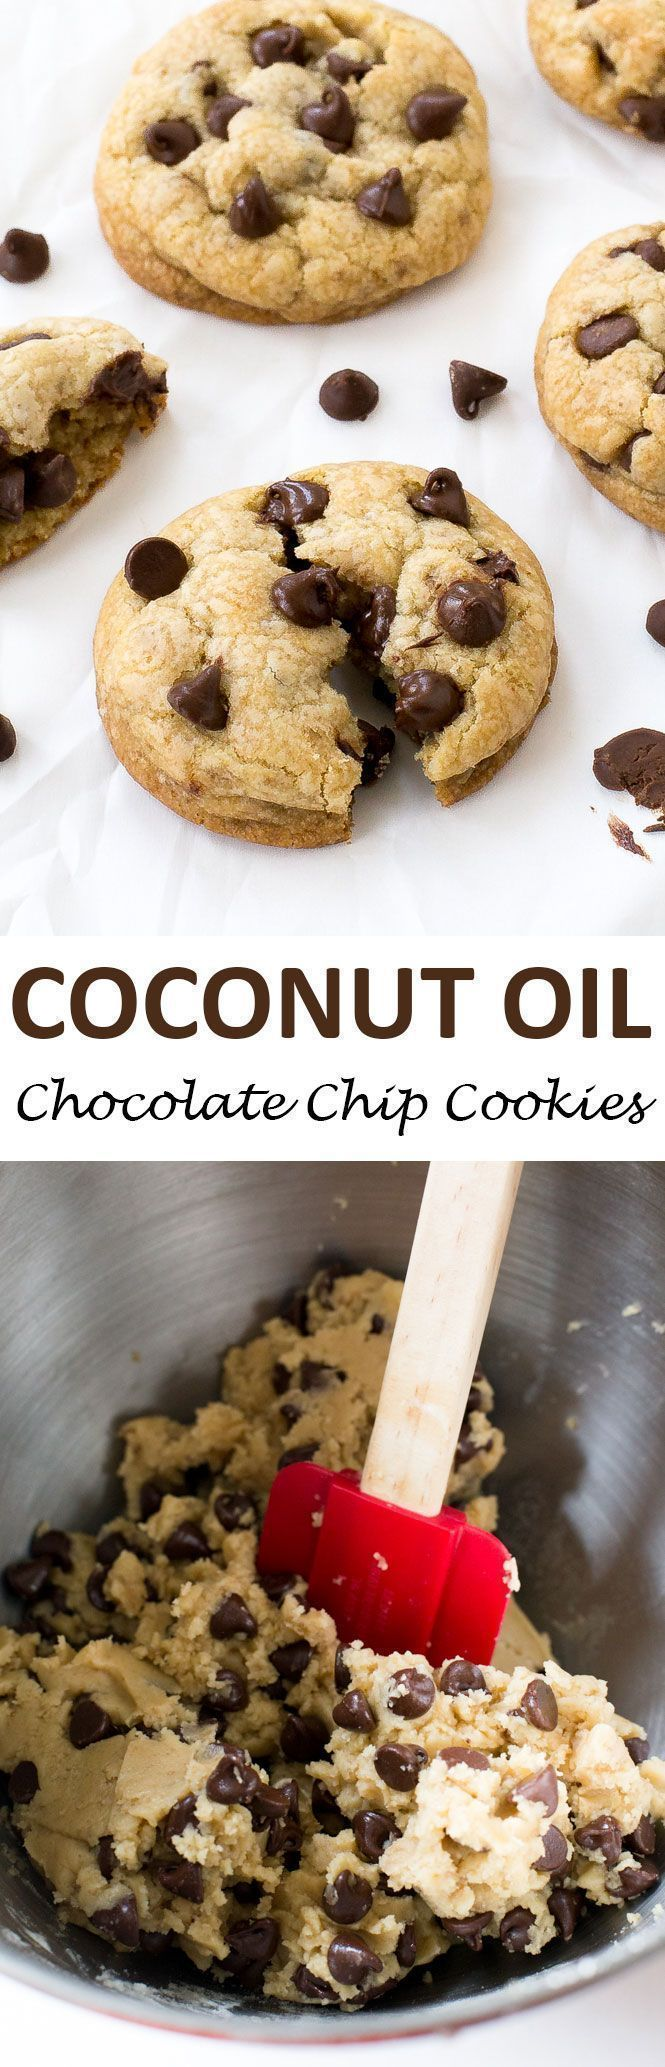 Coconut Oil Chocolate Chip Cookies made with coconut oil instead of butter. They are incredibly soft on the inside and firm on the edges. Thick and fluffy and loaded with tons of chocolate chips!   chefsavvy.com #recipe #coconut #oil #chocolate #chip #coo